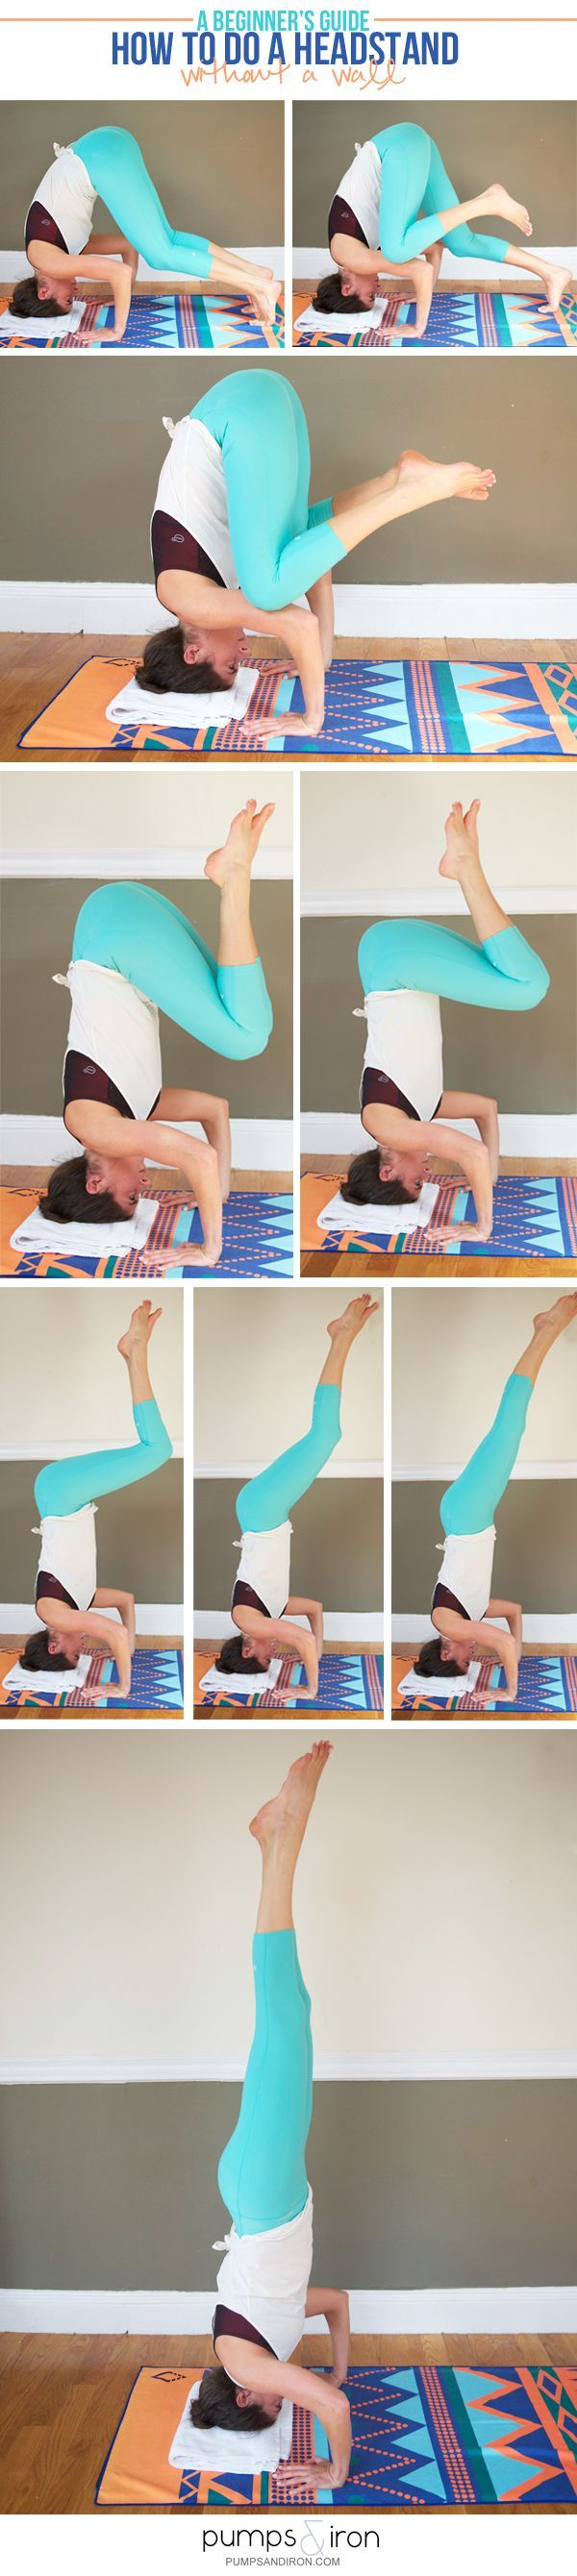 How to Do a Headstand without a Wall -- there are lots of ways to get into a hea...